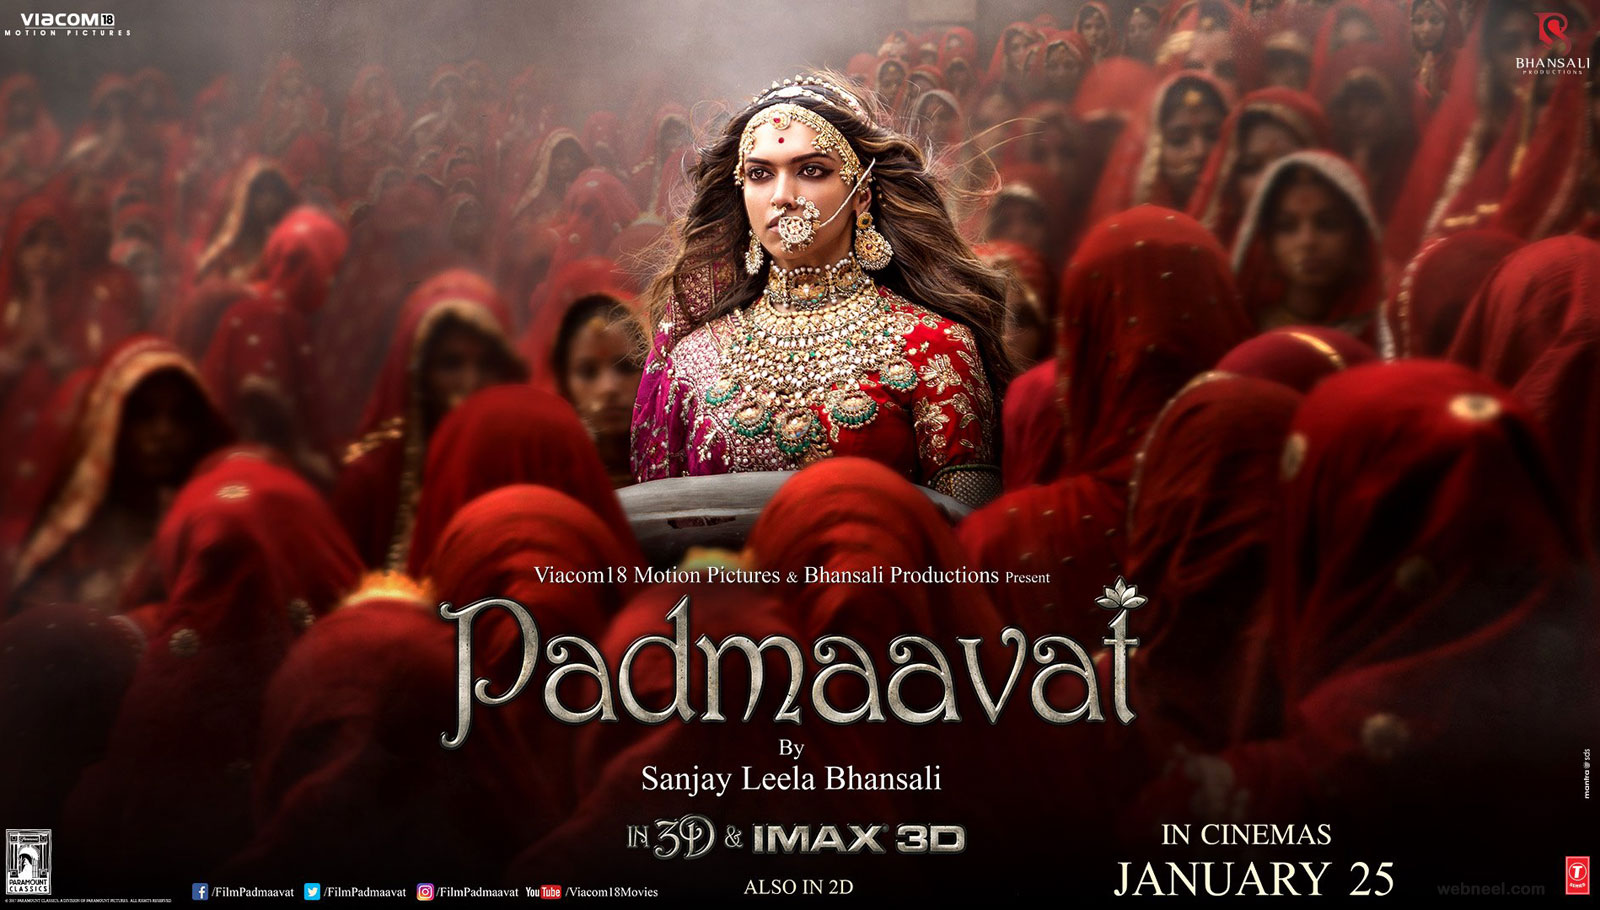 india movie poster design bollywood padmaavat